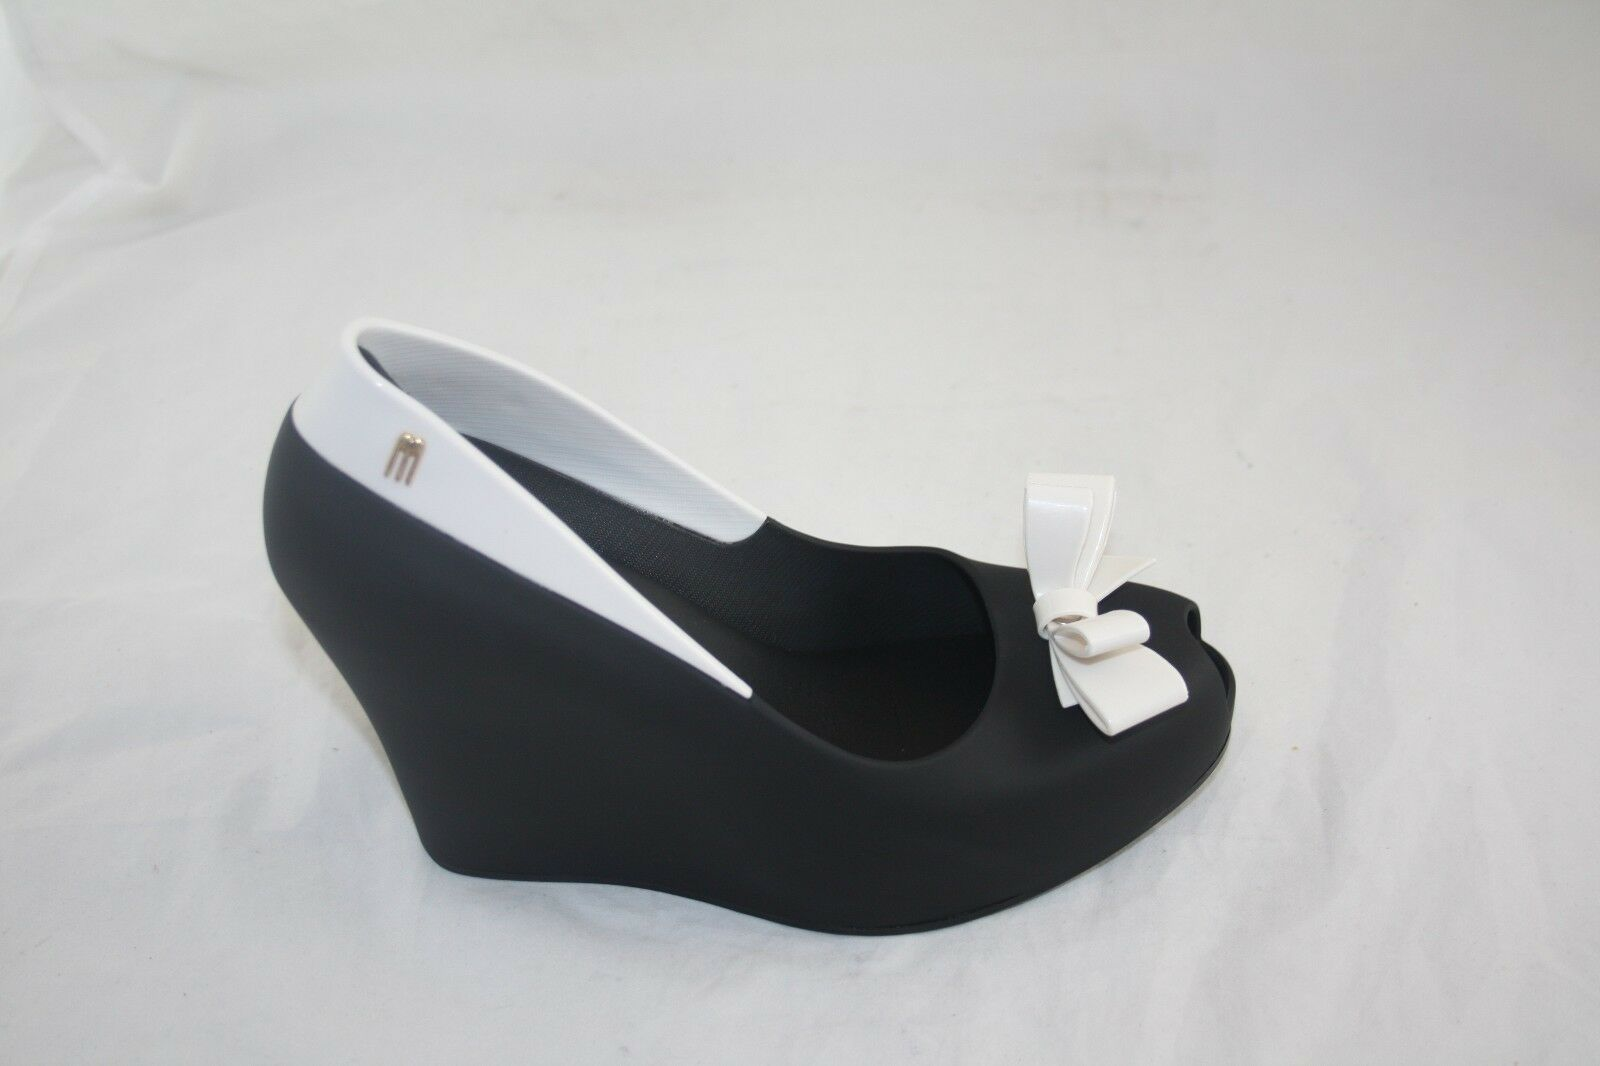 NEW WMN'S 31624 MELISSA QUEEN WEDGE AD 51708 BLACK WHITE MSRP  155.00